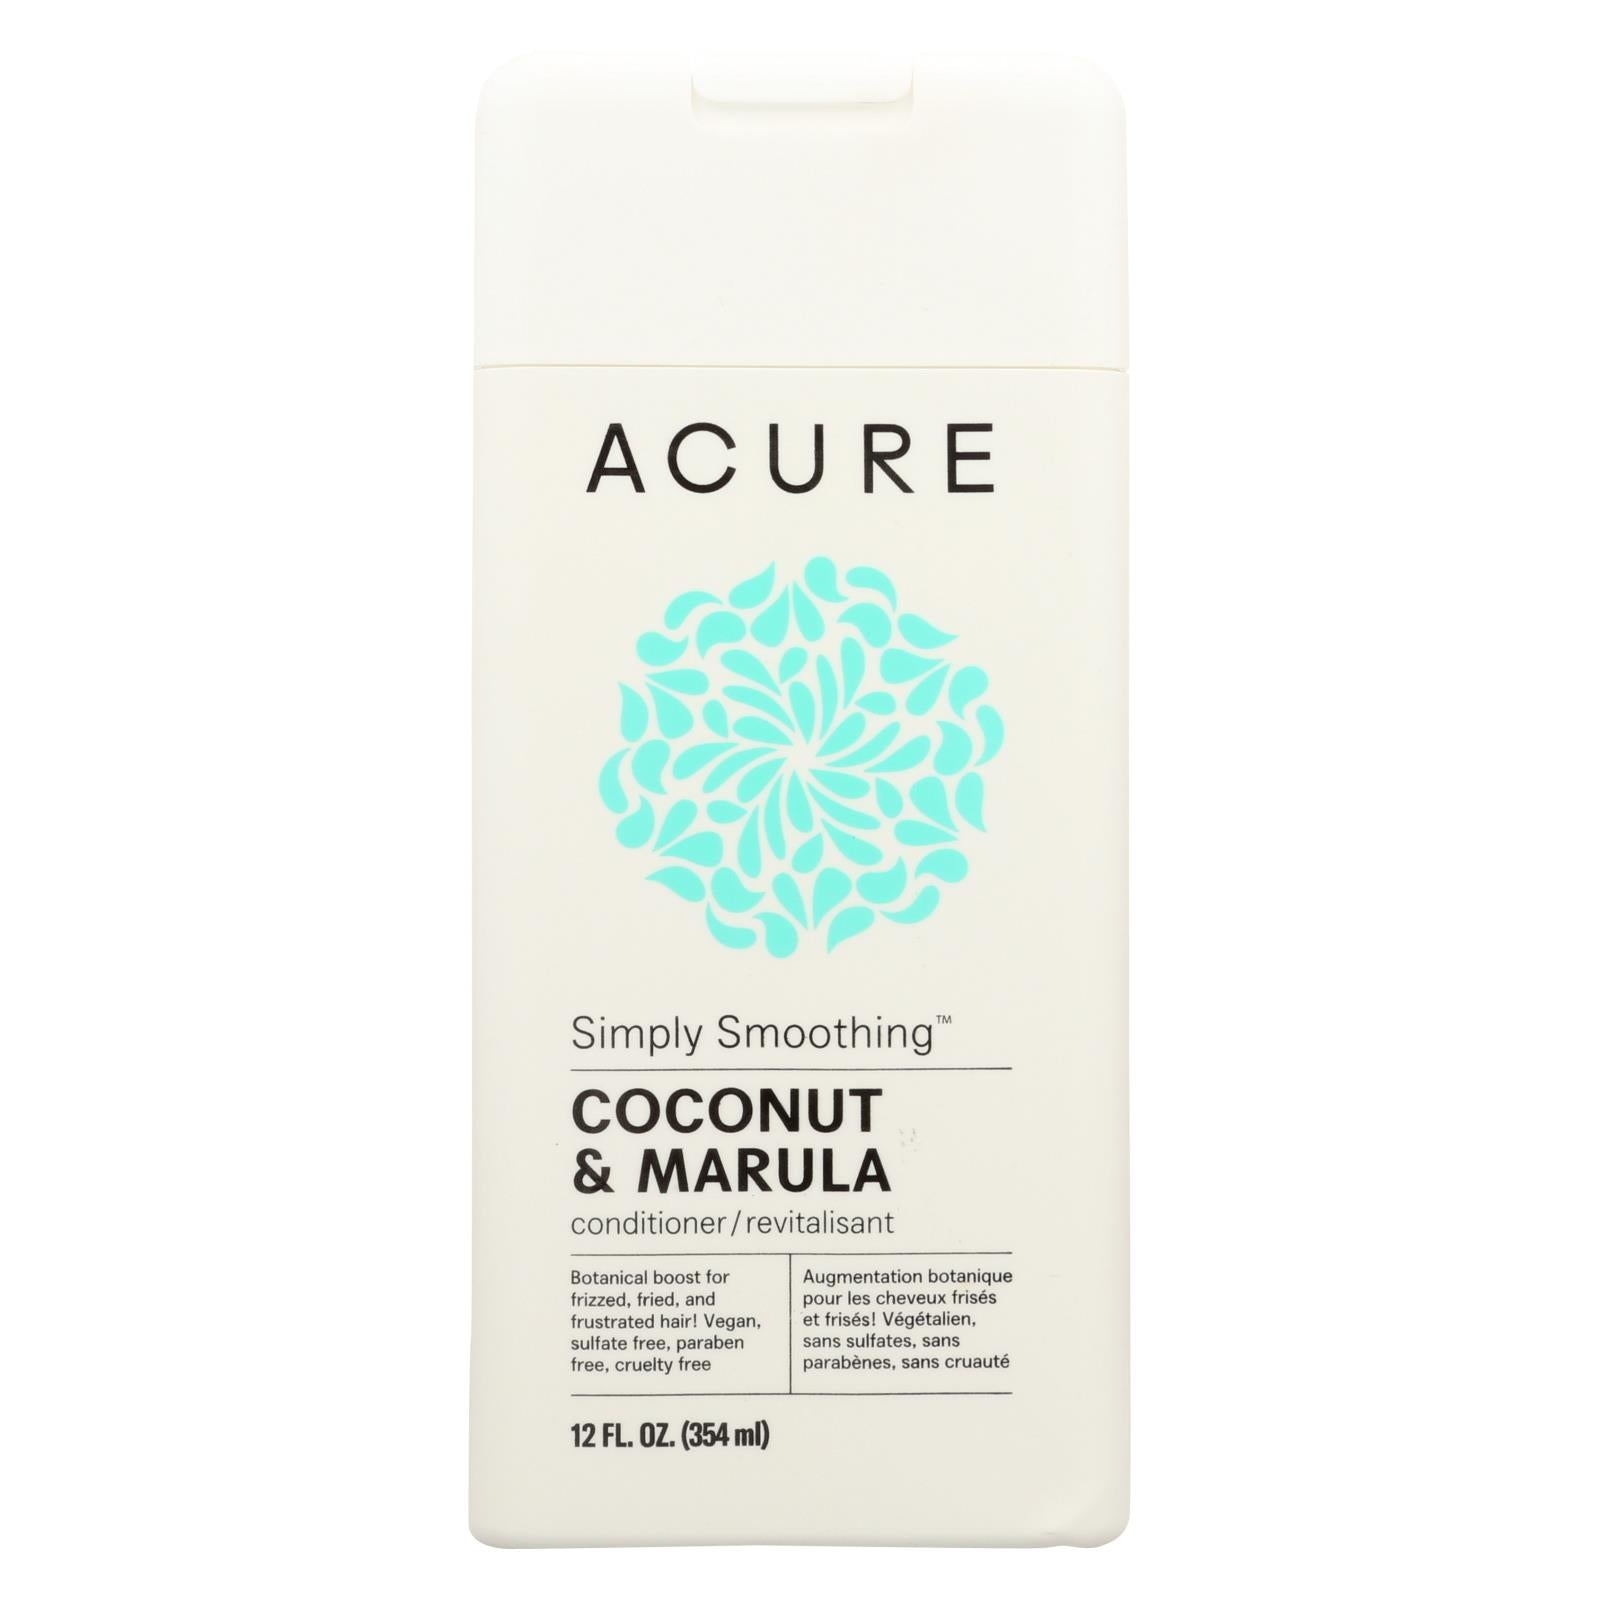 Buy Acure Conditioner - Simply Smoothing - 12 fl oz - Conditioner from Veroeco.com